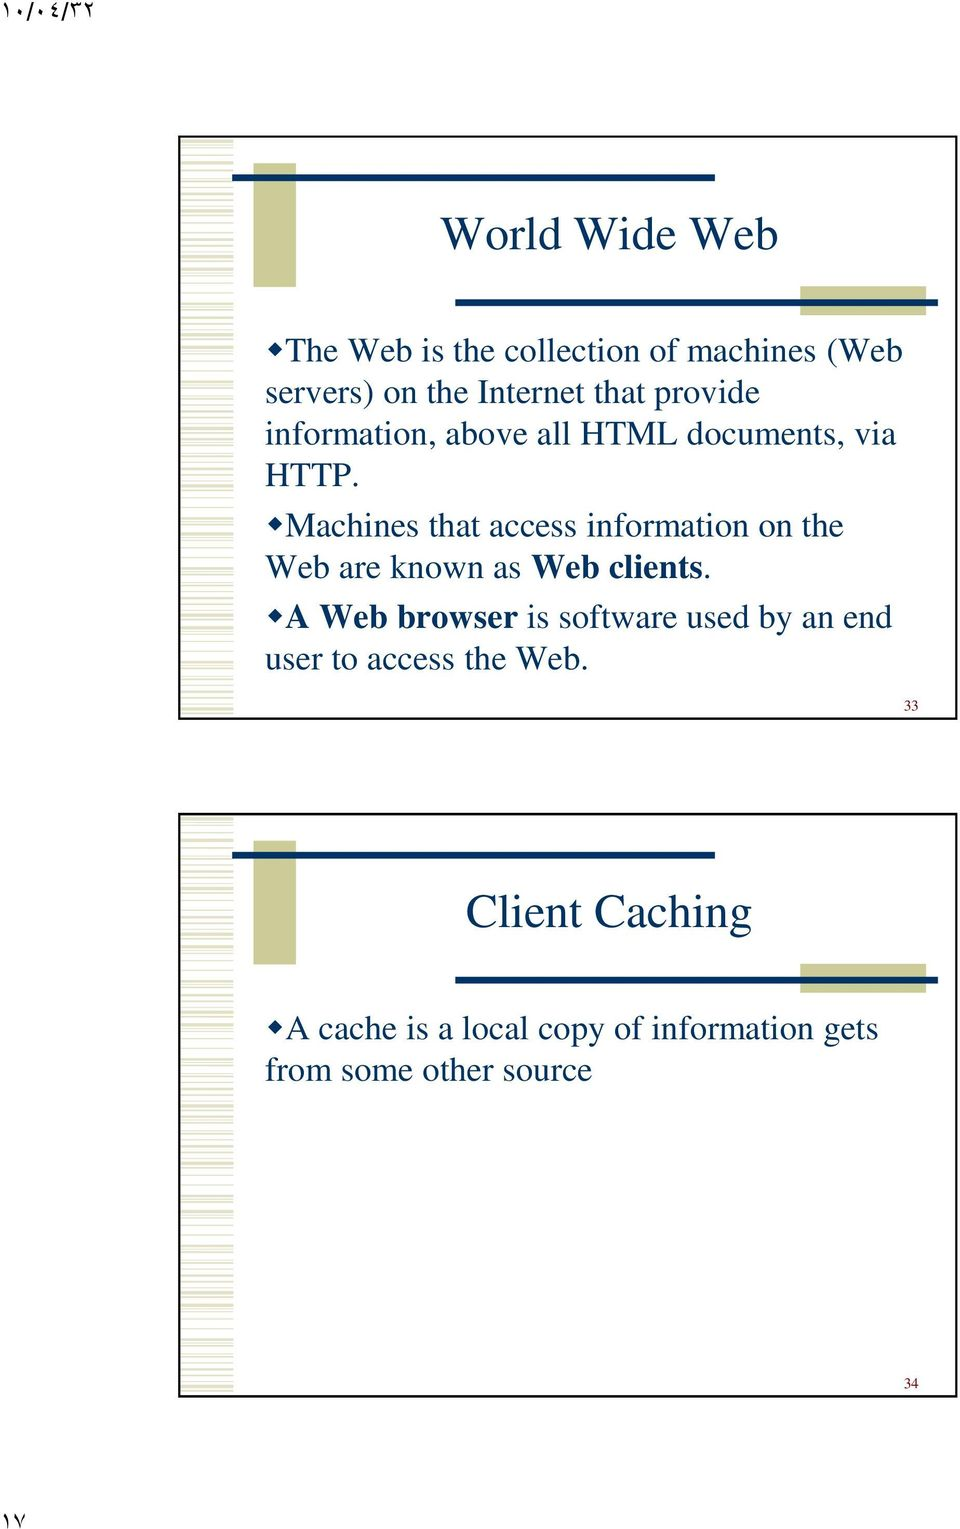 Machines that access information on the Web are known as Web clients.